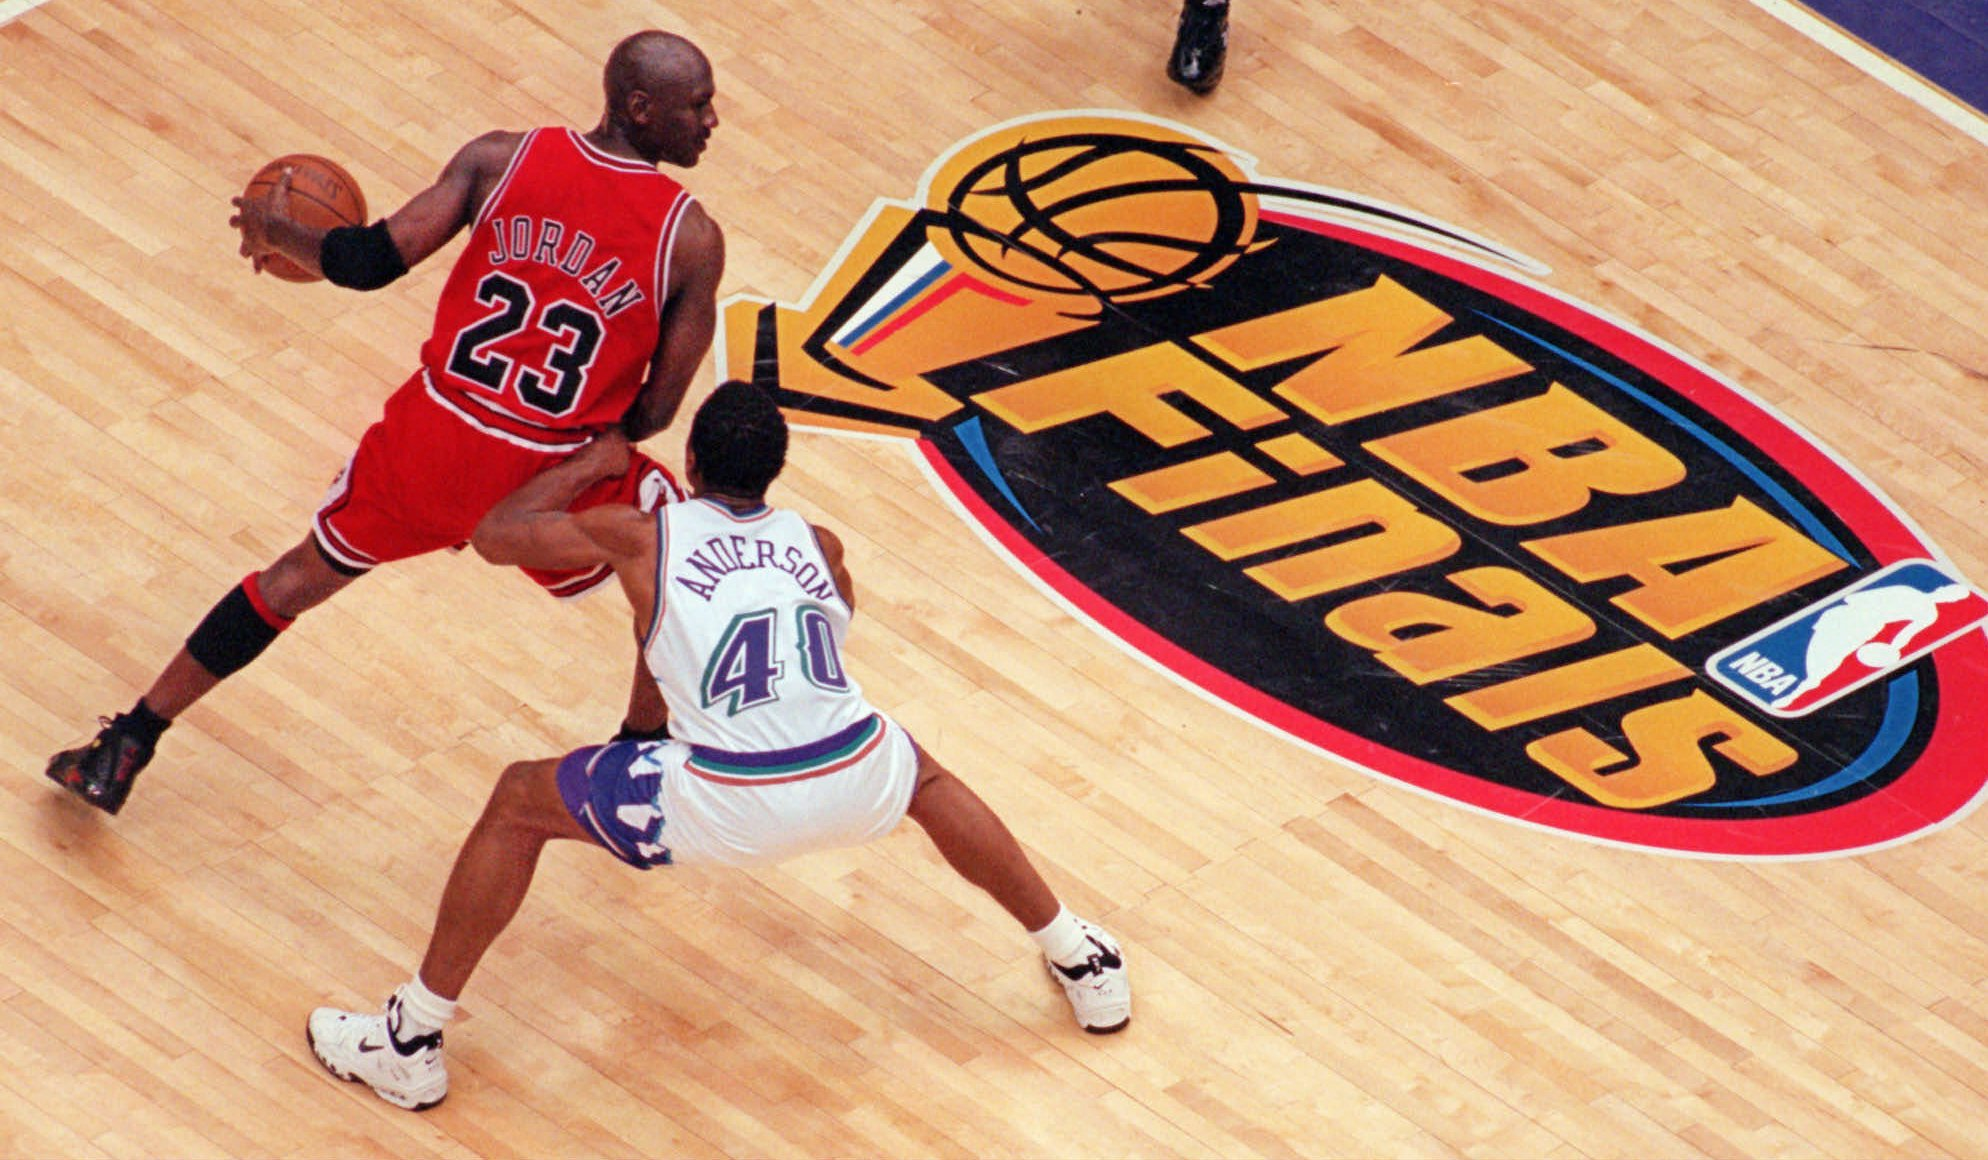 Espn To Cap Last Dance With Movie On 1998 Finals Game 6